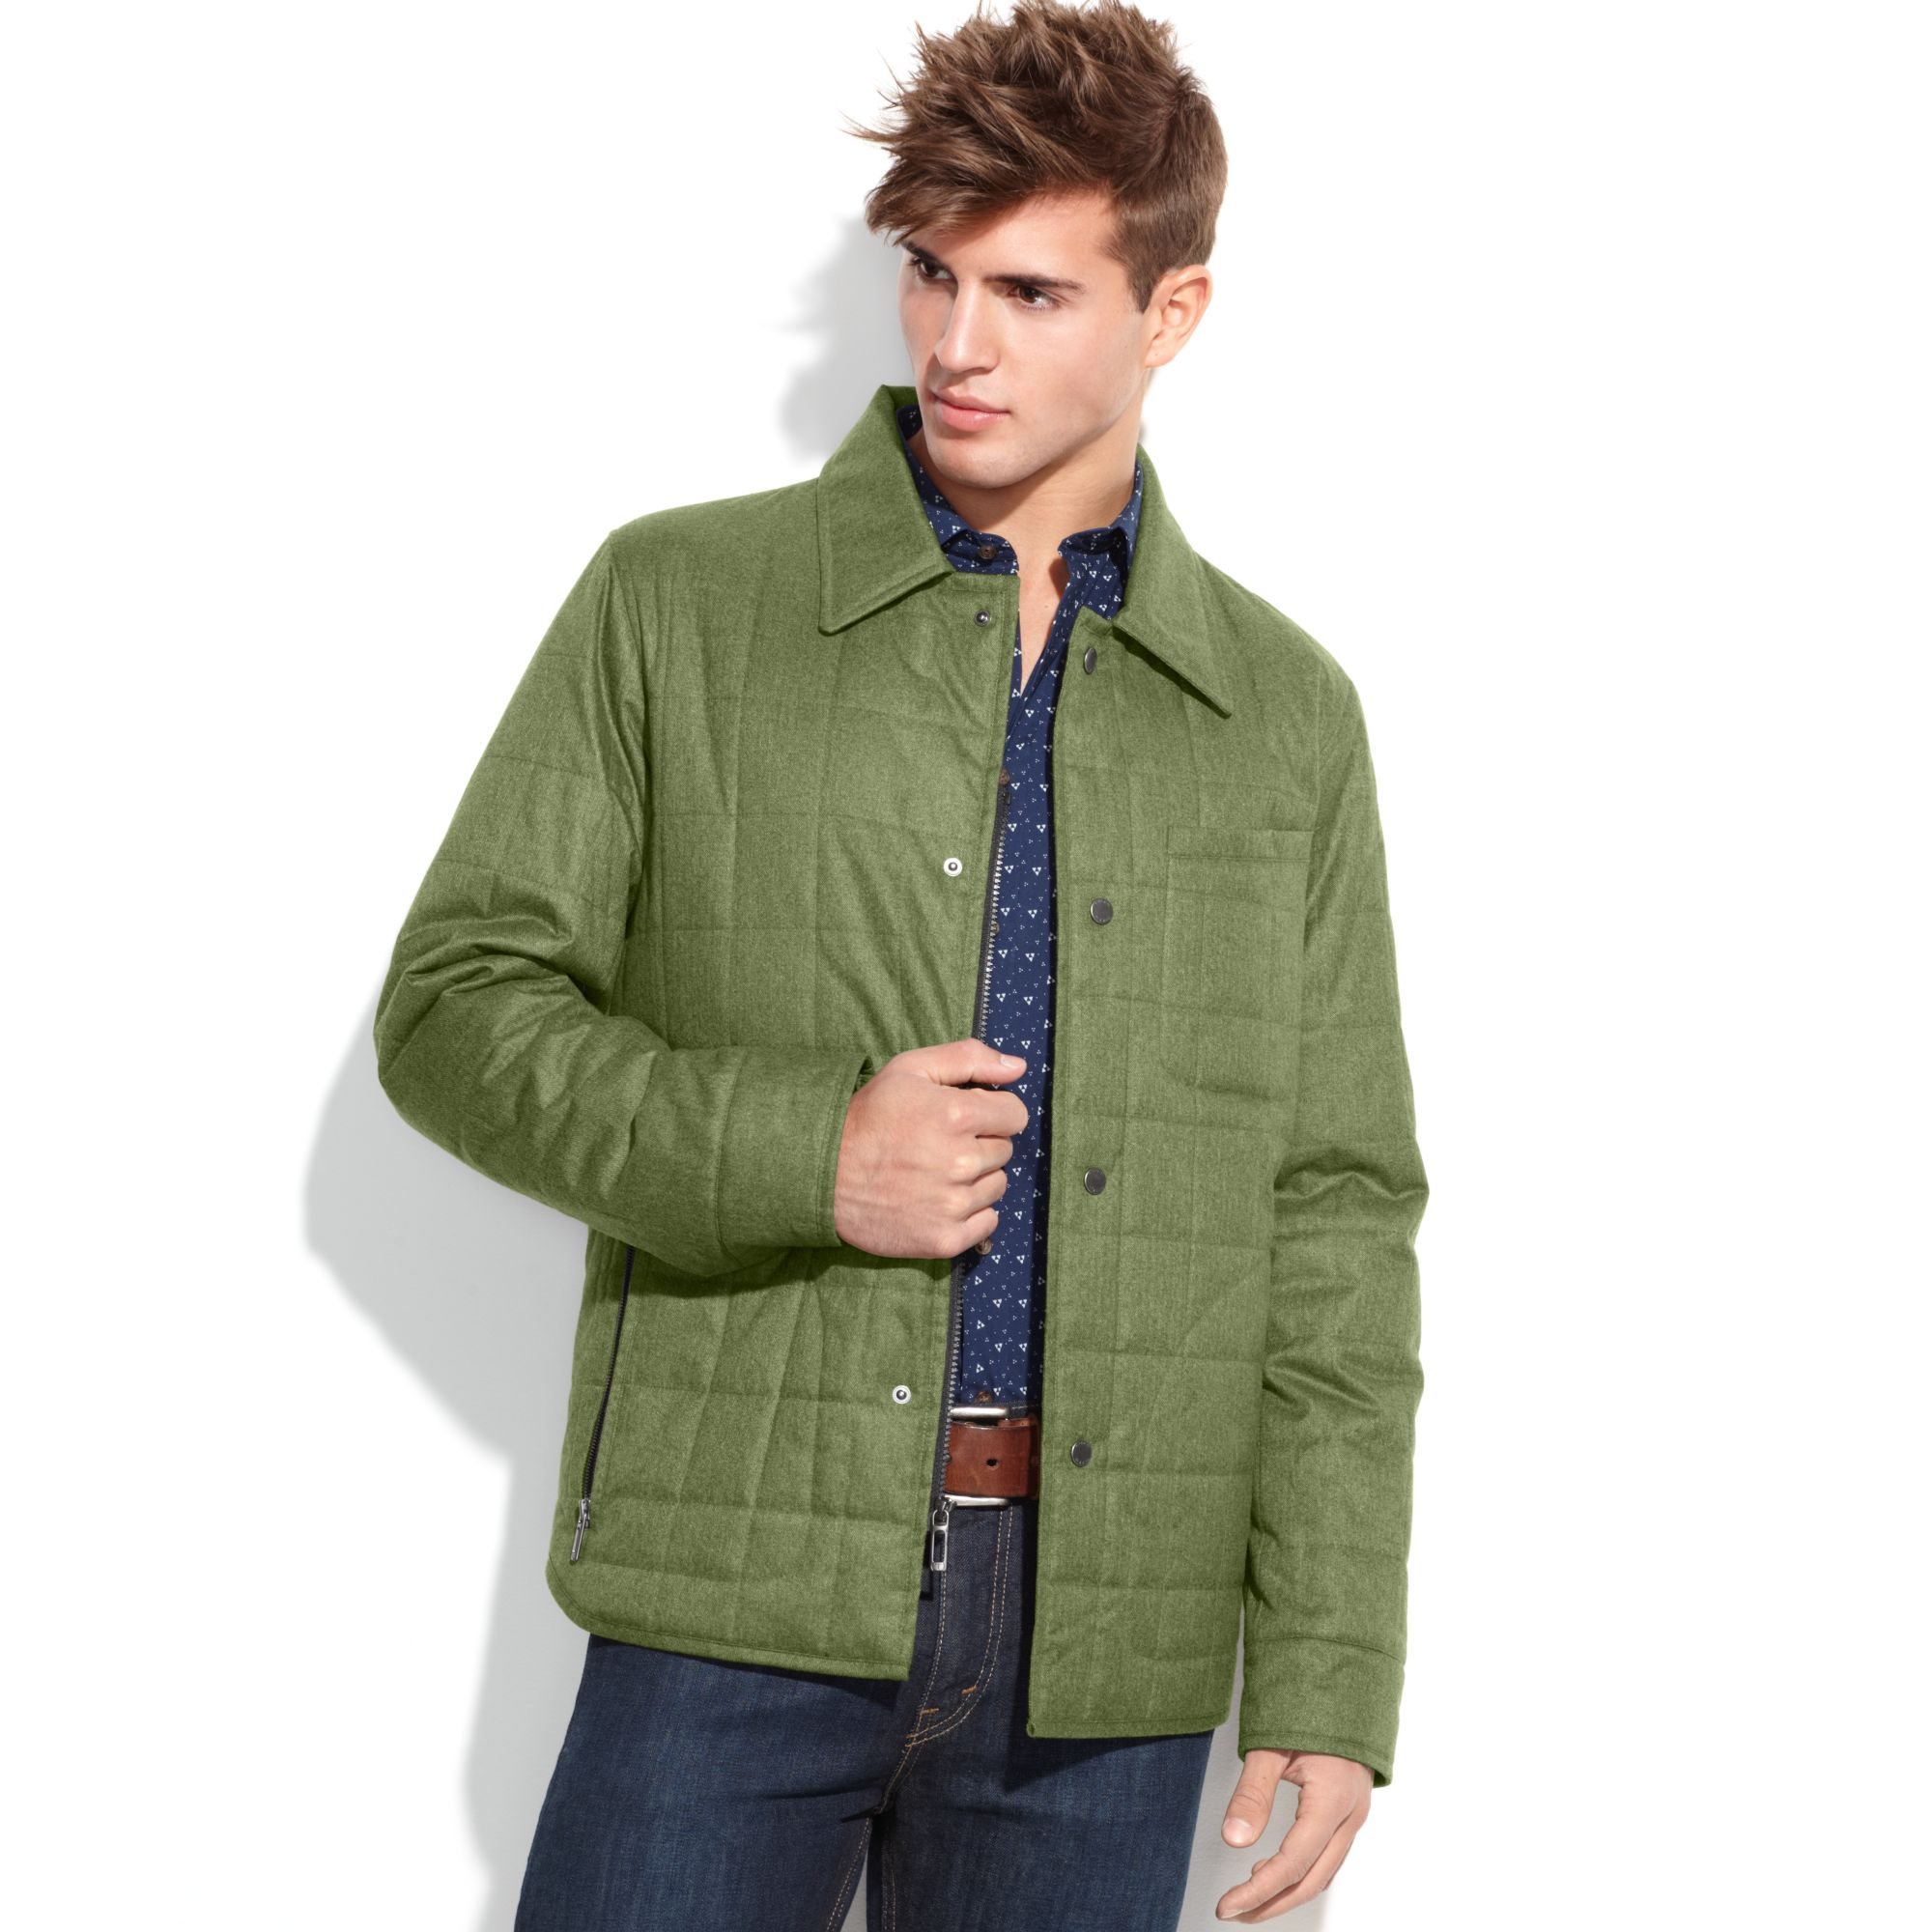 Lyst - Tumi Lightweight Tweed Textured Quilted Shirt Jacket in ...